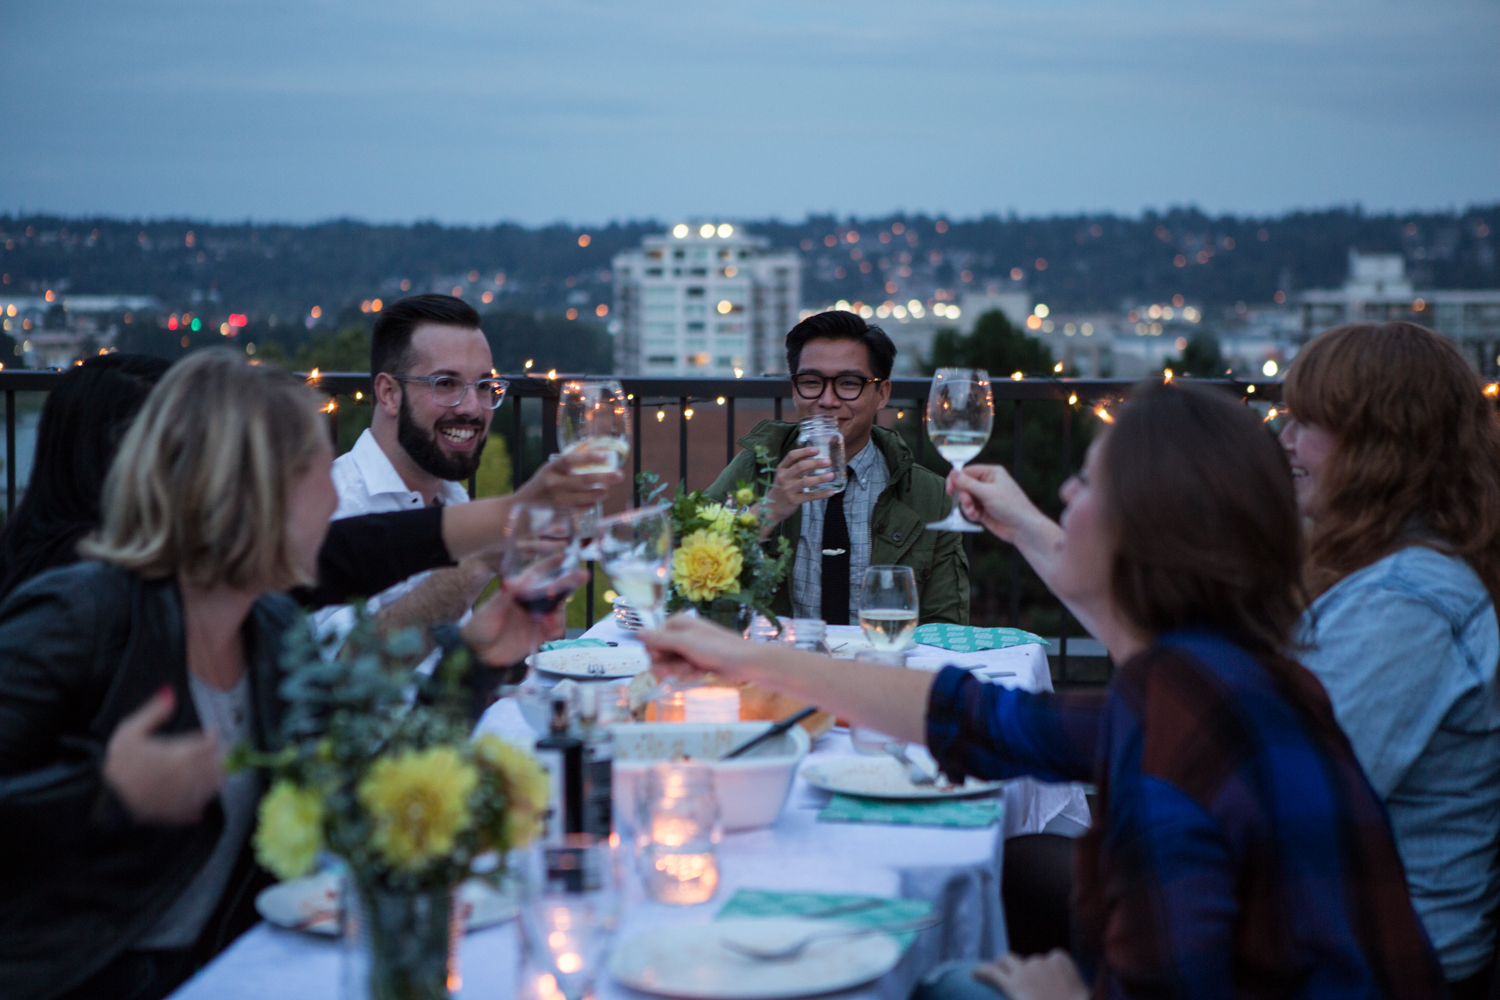 New-Westminster-Rooftop-Dinner-Party_-Bolandia-1955.jpg